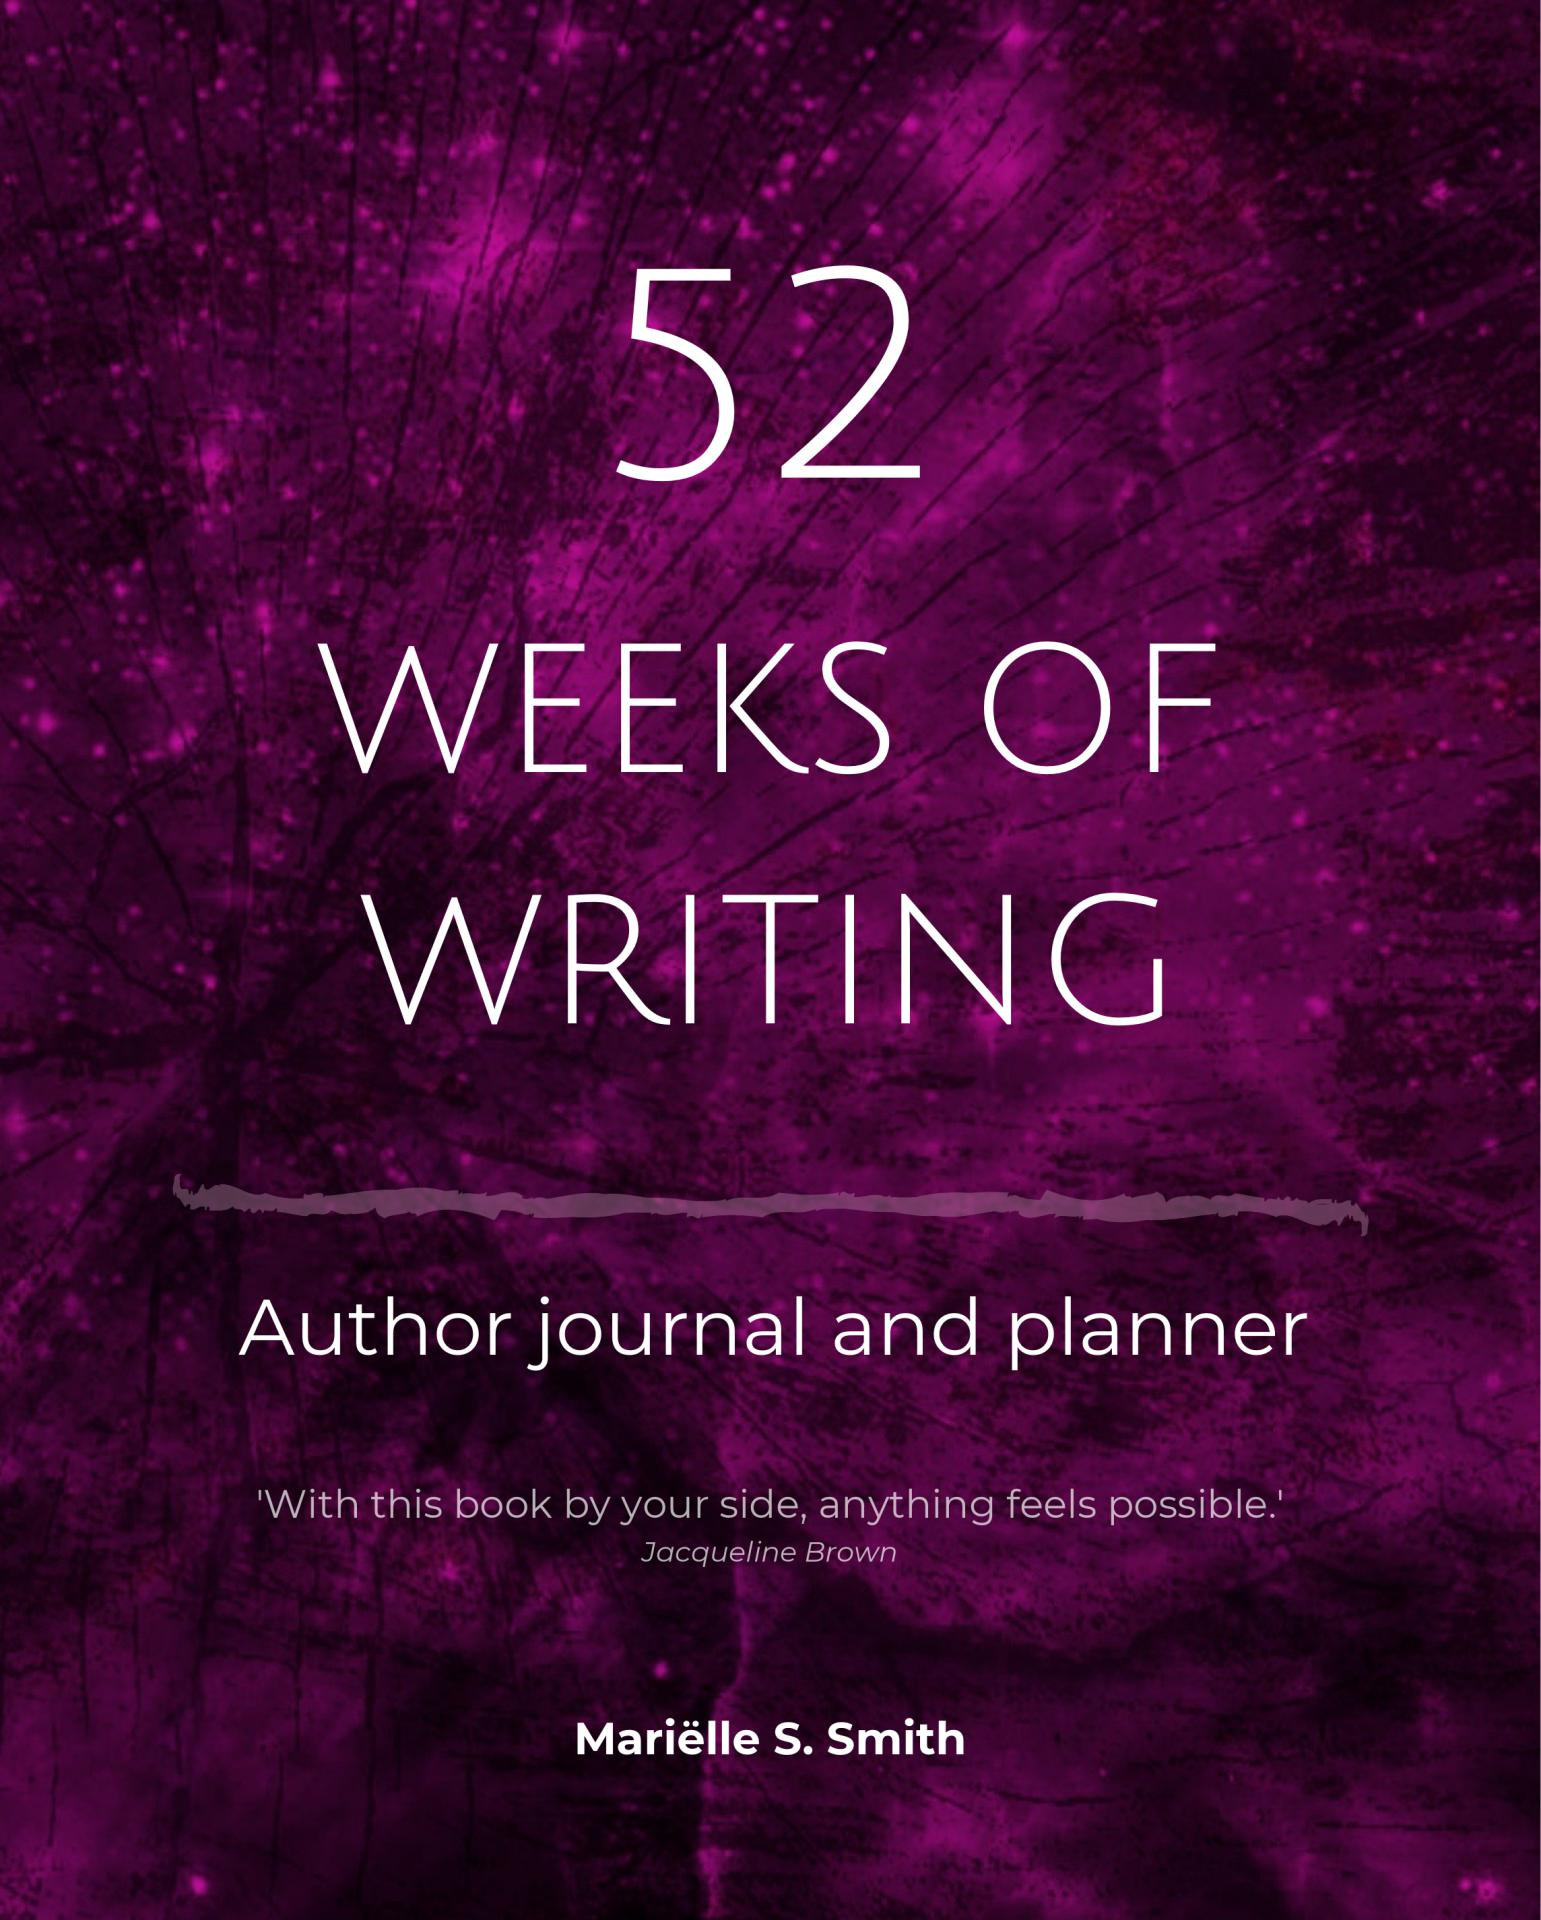 52 Weeks Cover